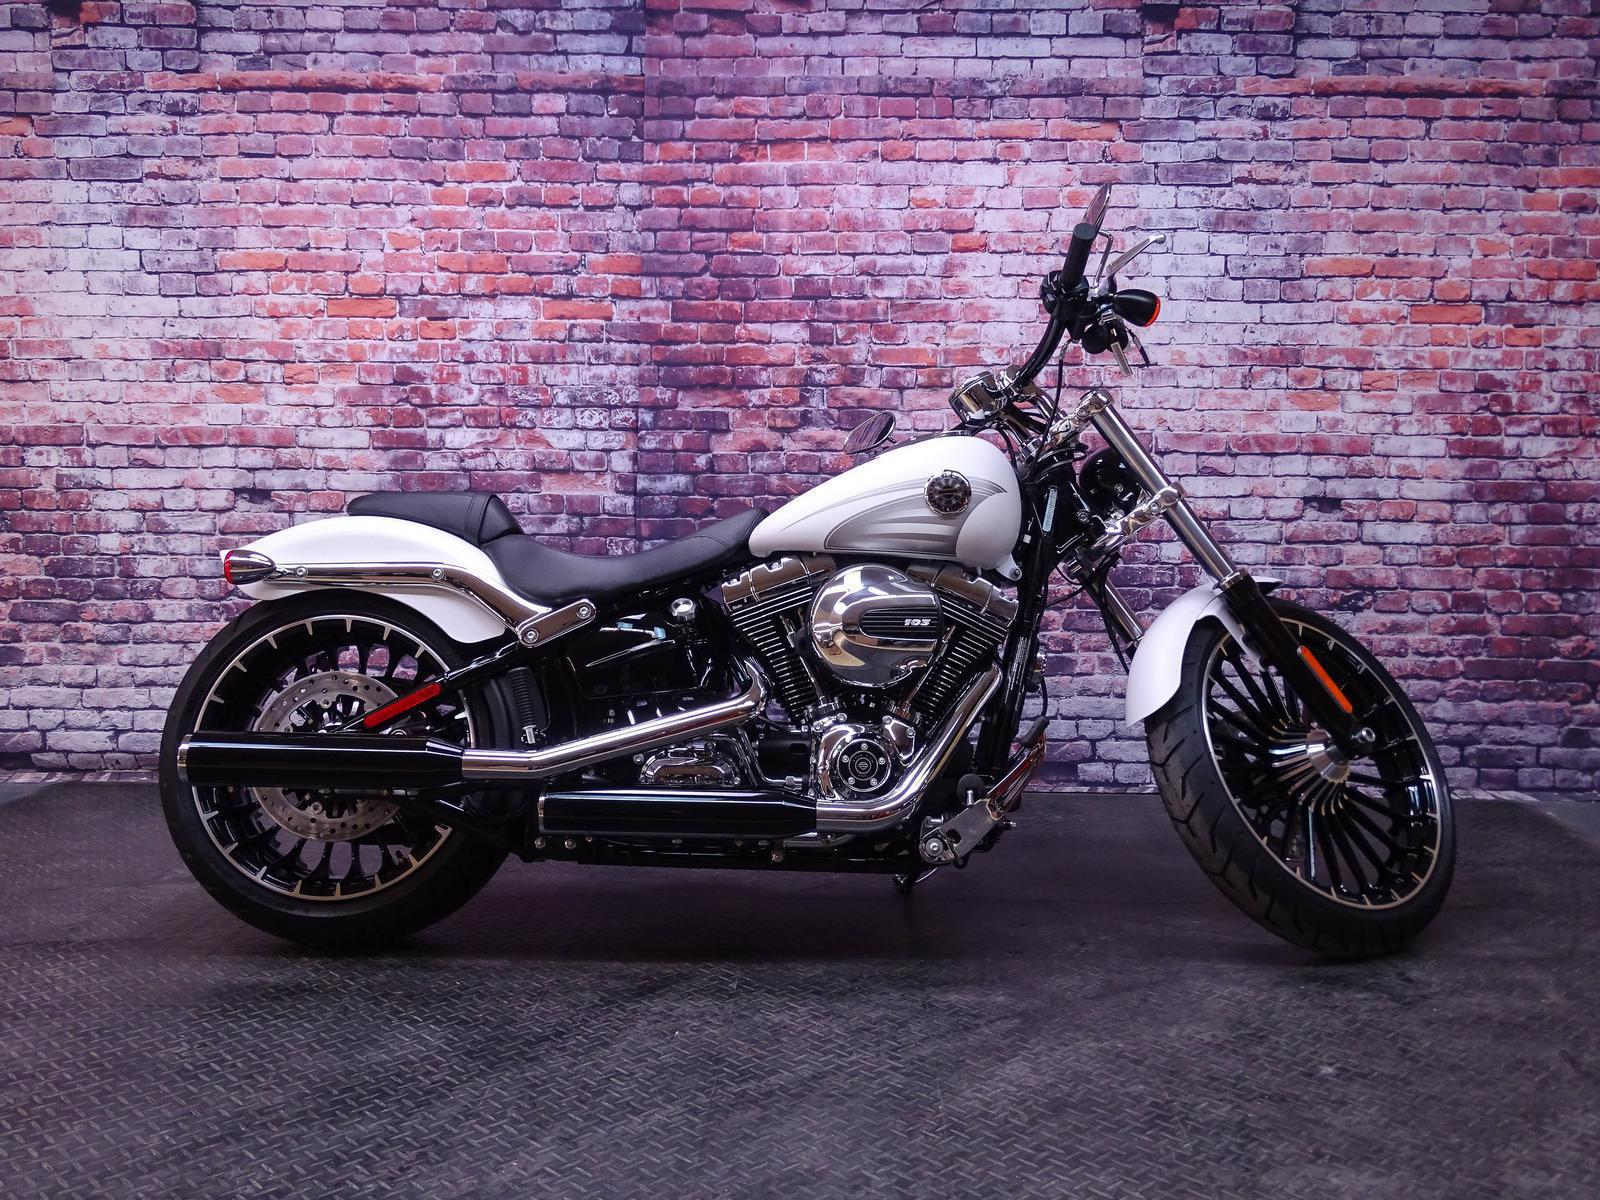 2017 harley-davidson® breakout fxsb for sale in manitowoc, wi